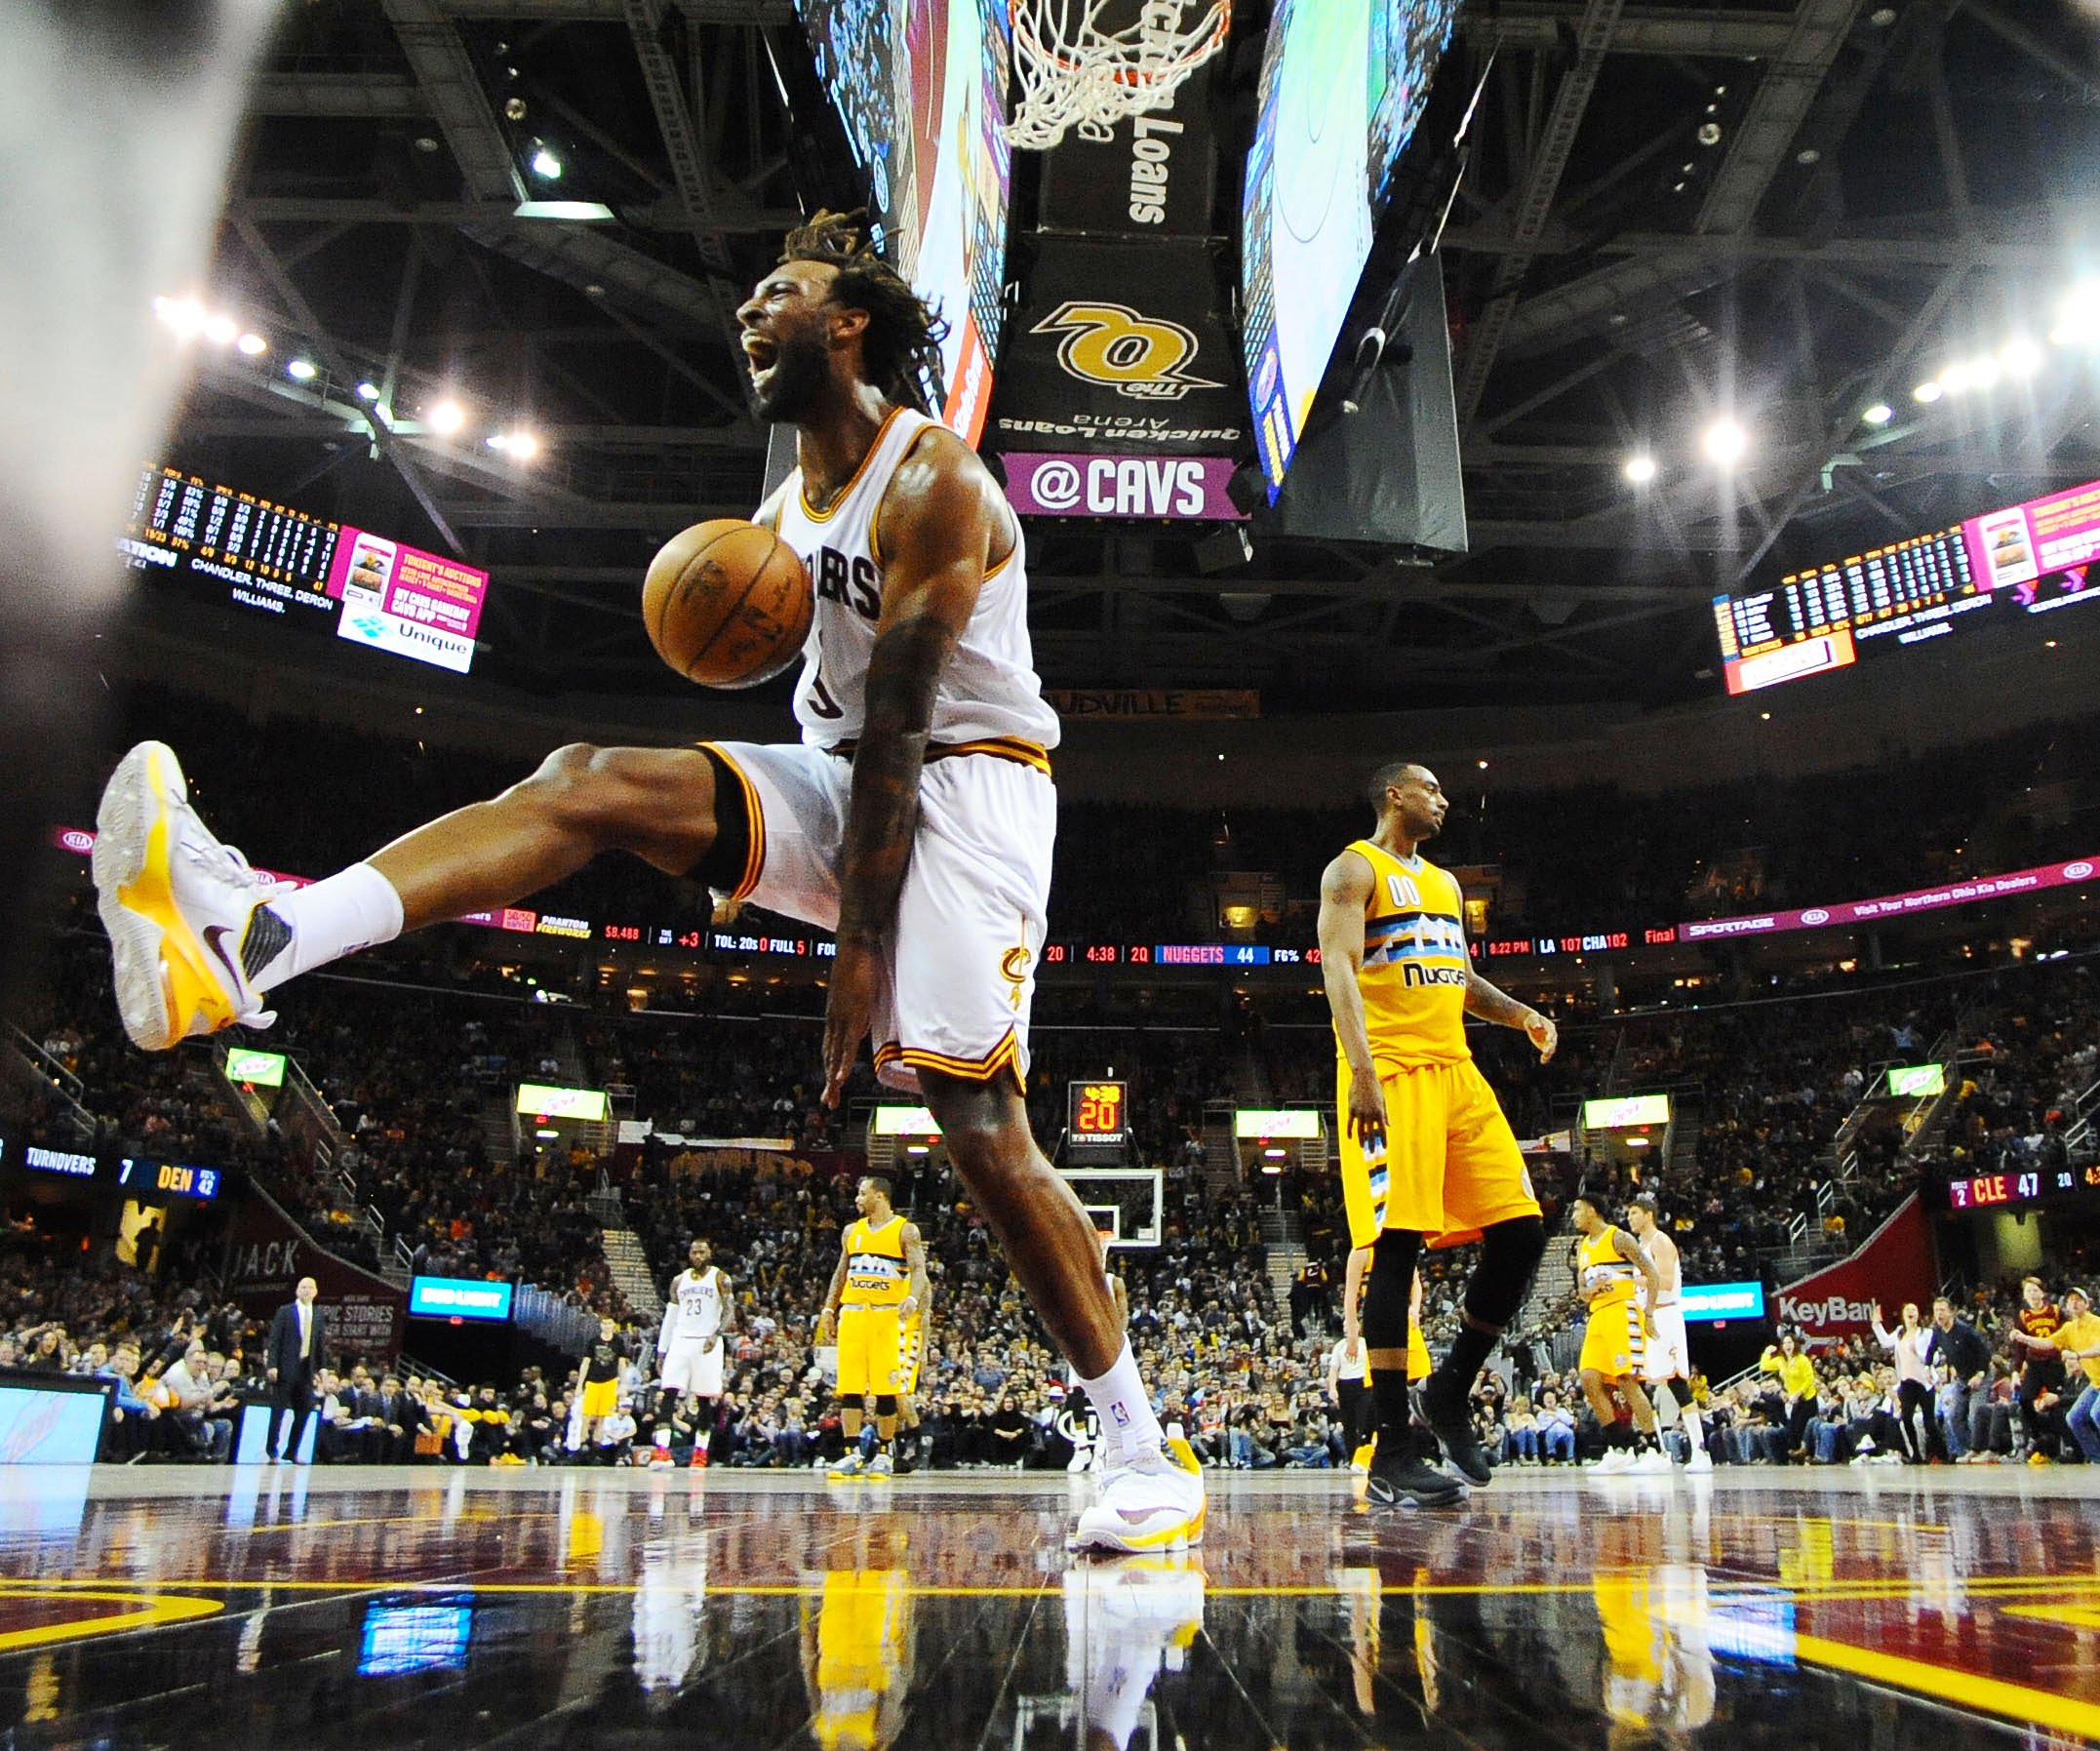 9873070-nba-denver-nuggets-at-cleveland-cavaliers